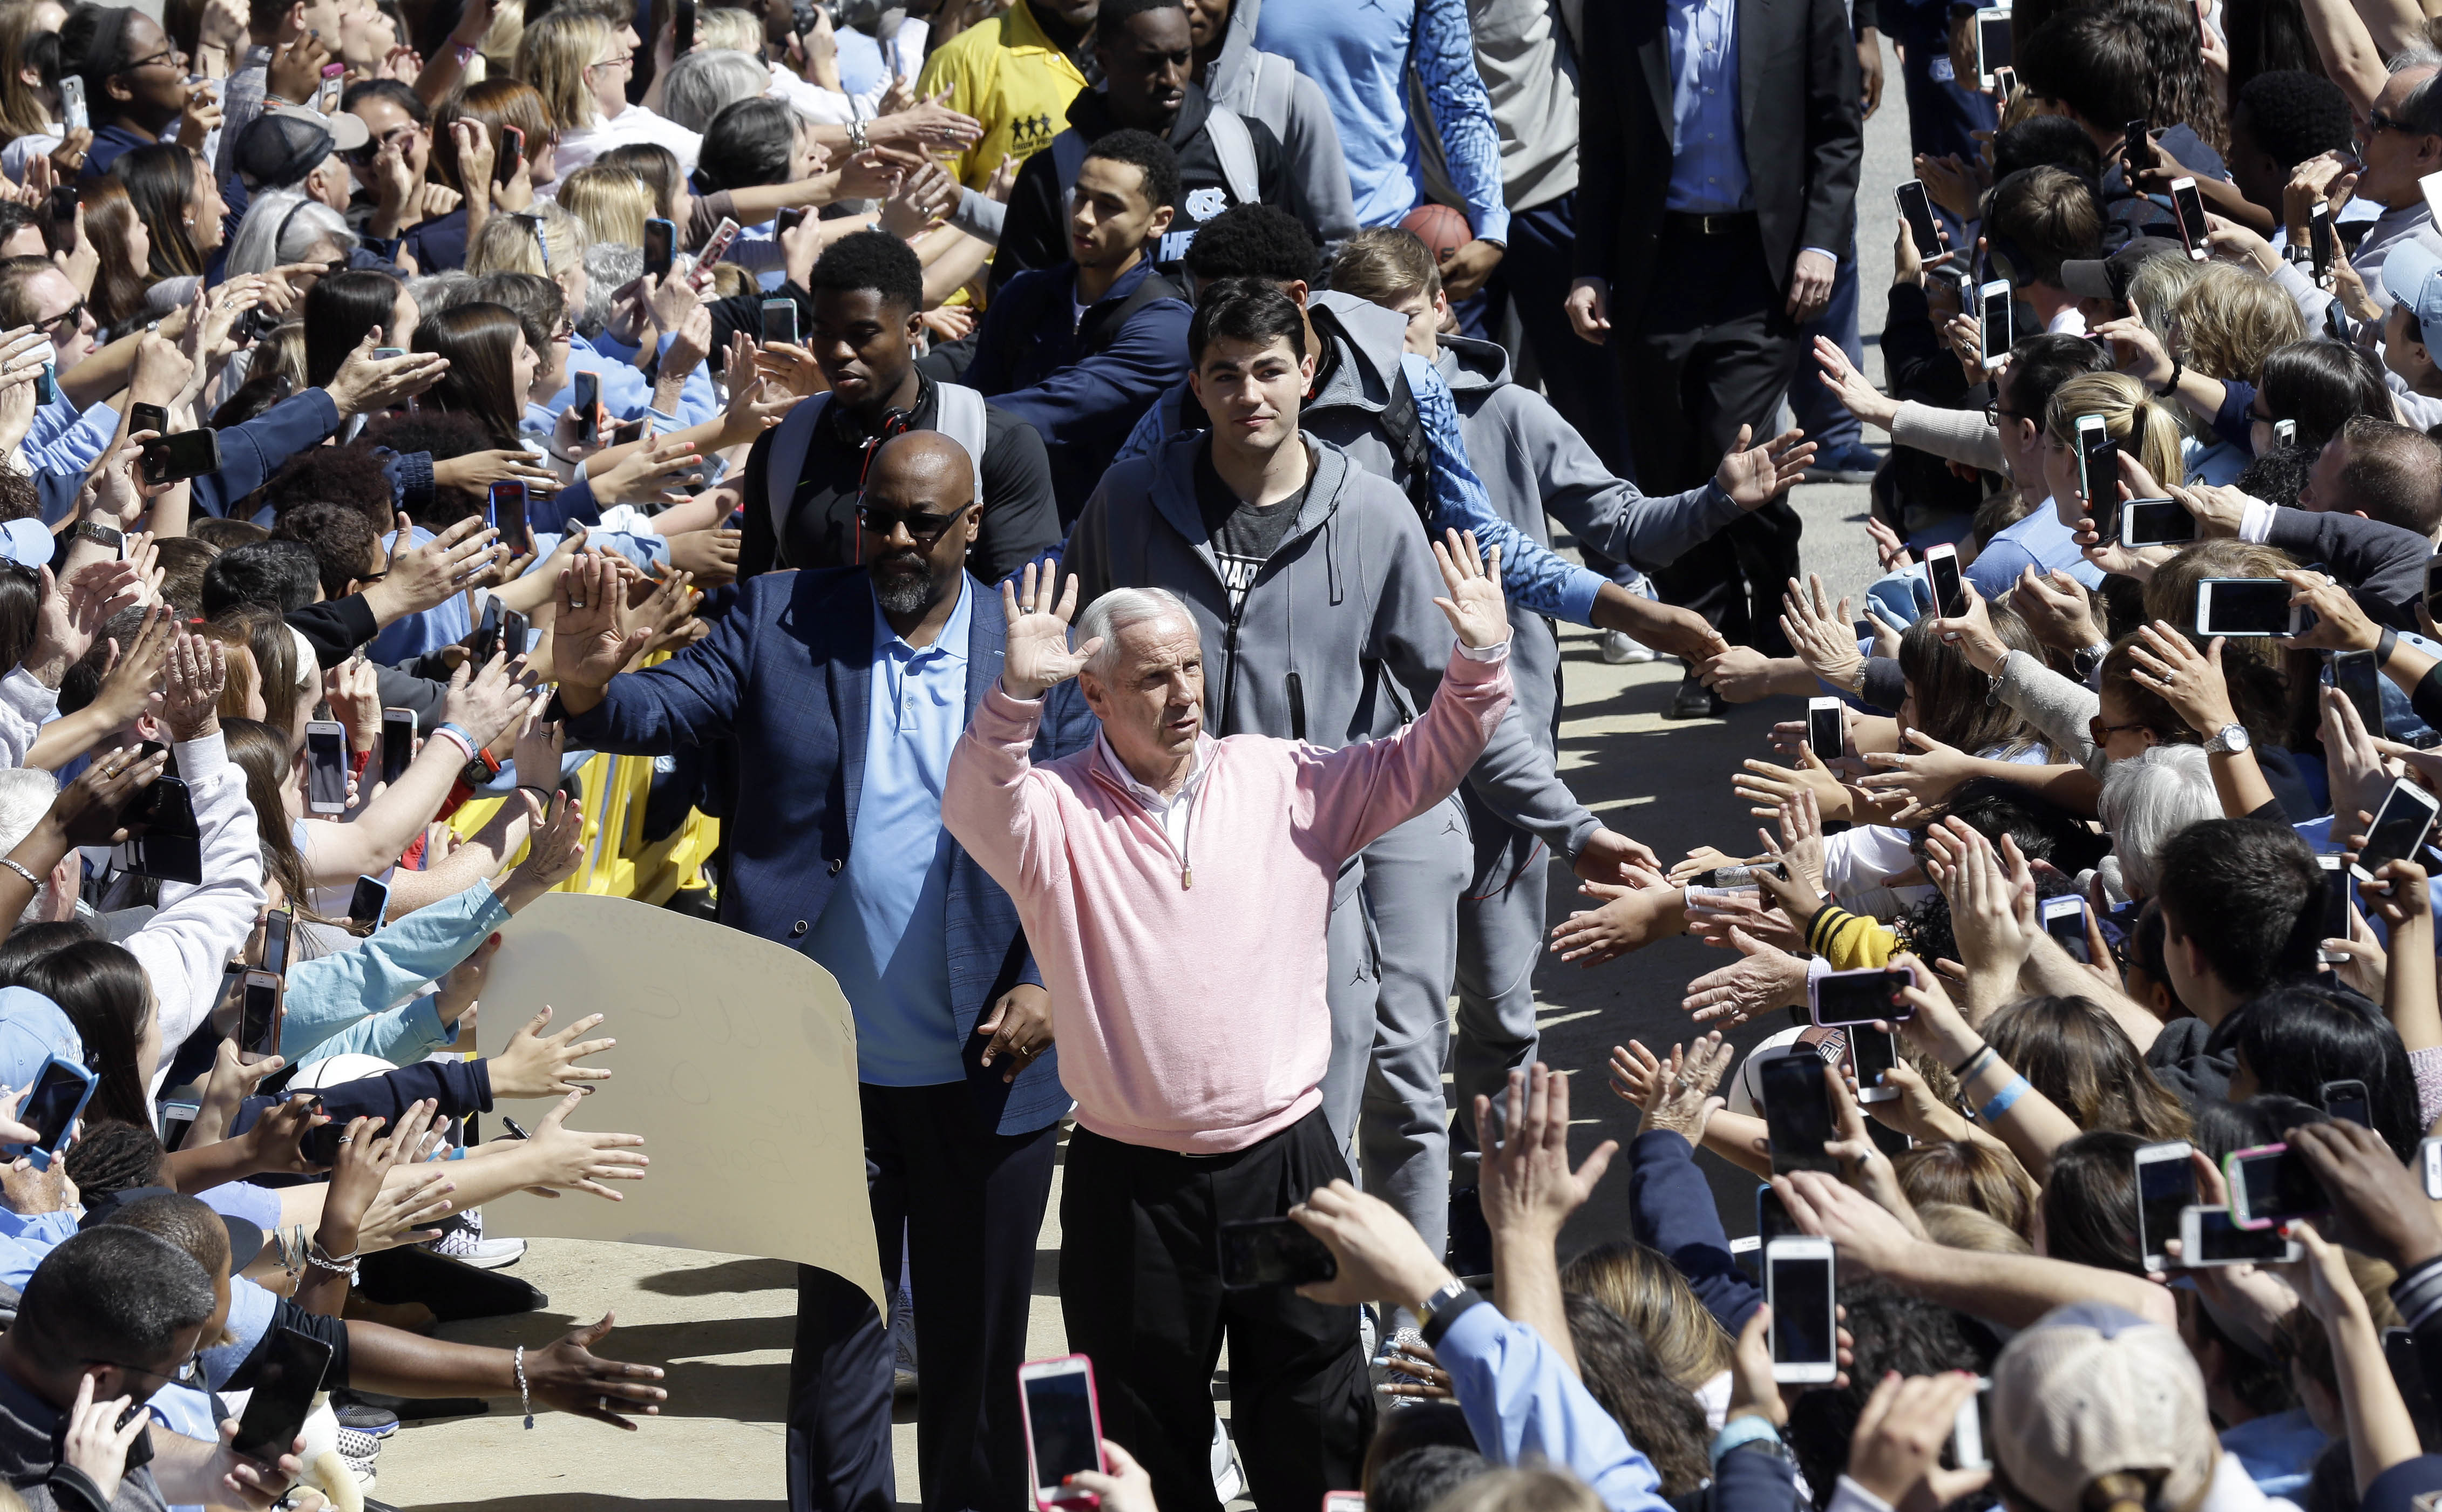 Fans welcome home North Carolina coach Roy Williams and his team in Chapel Hill, N.C., Tuesday, April 5, 2016, following the team's 77-74 loss to Villanova in the NCAA college basketball Final Four championship game Monday night in Houston. (AP Photo/Gerr